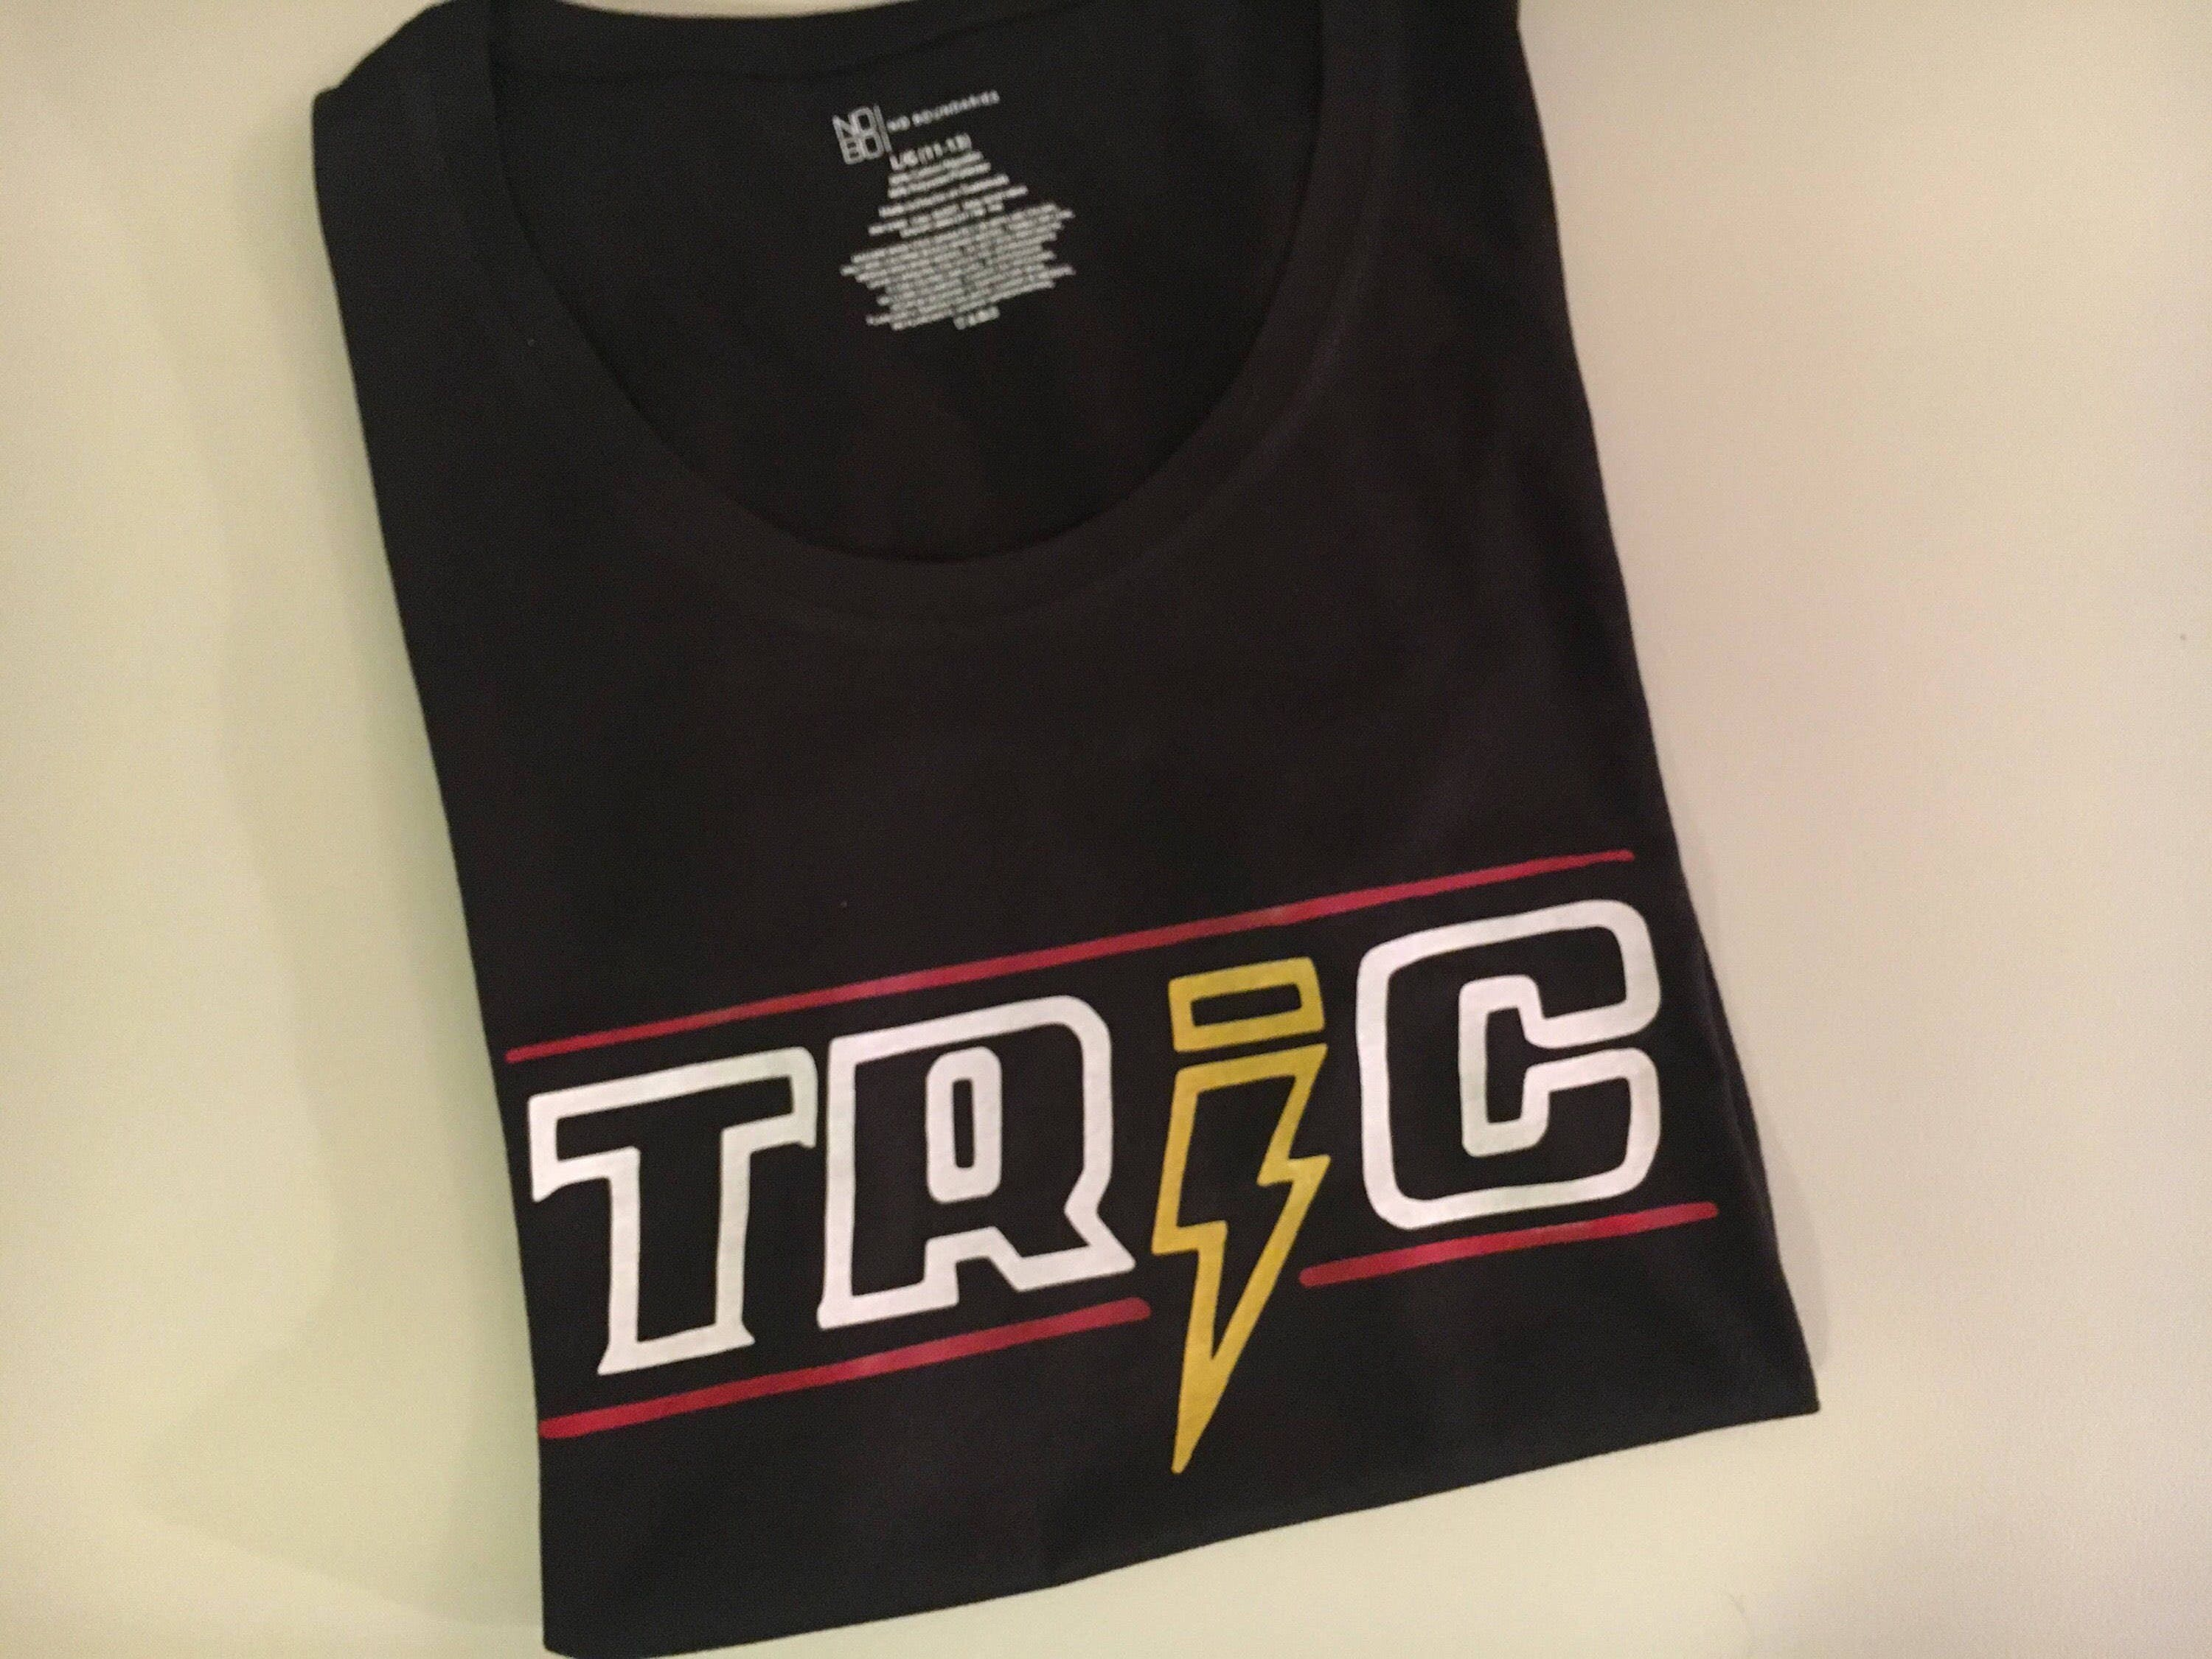 One tree hill tric t shirt description one tree hill publicscrutiny Choice Image